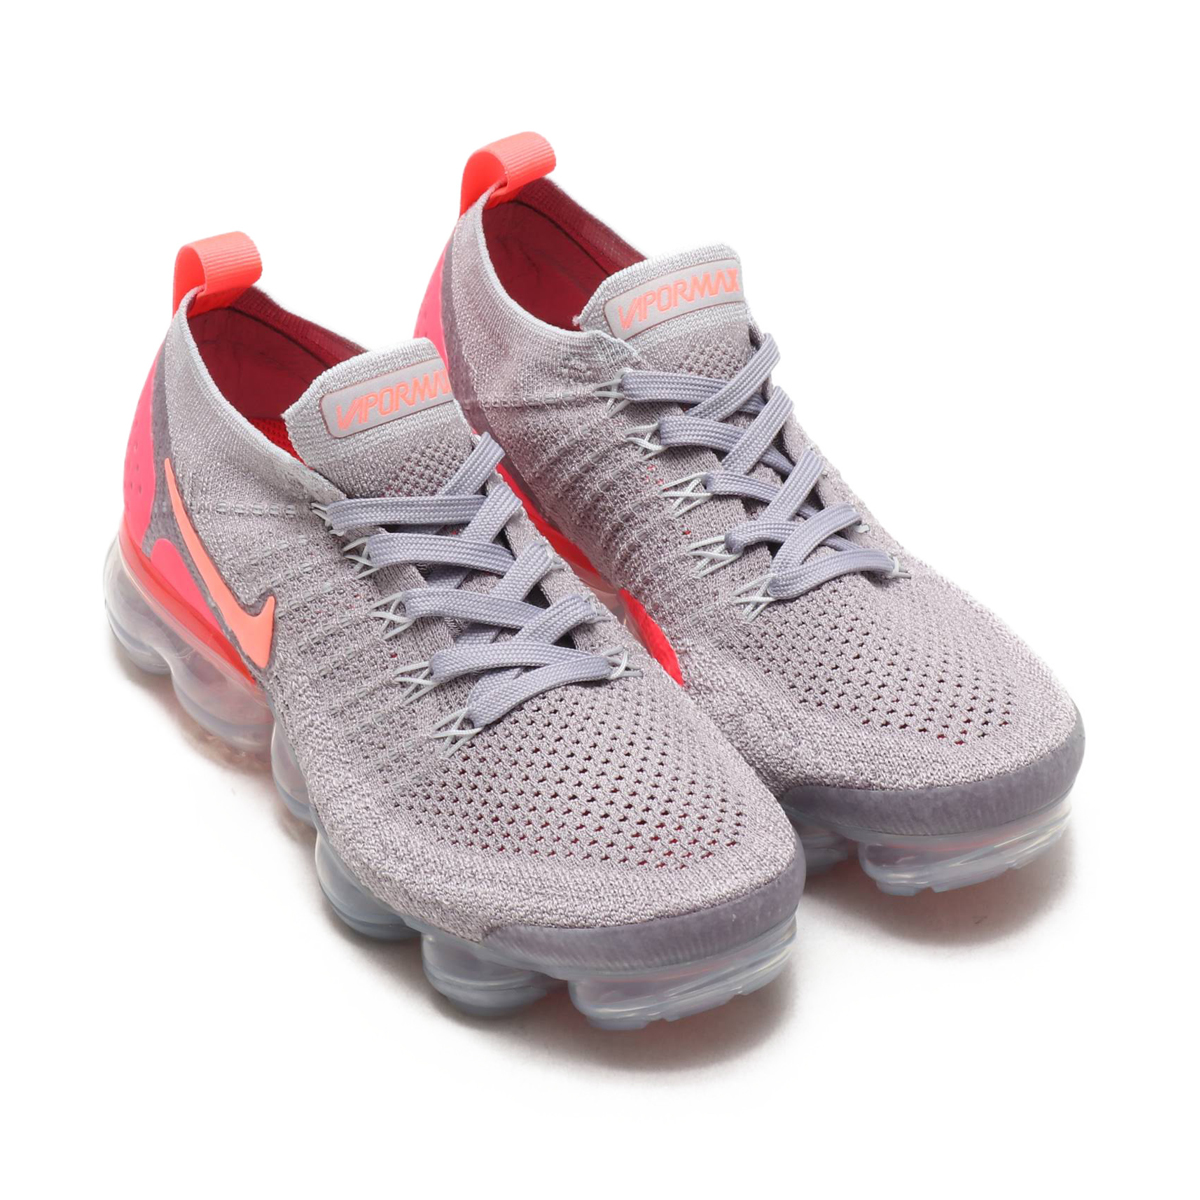 half off ba74c c7717 NIKE W AIR VAPORMAX FLYKNIT 2 (Nike women air vapor max fried food knit 2)  ATMOSPHERE GREY/CRIMSON PULSE 18SS-S